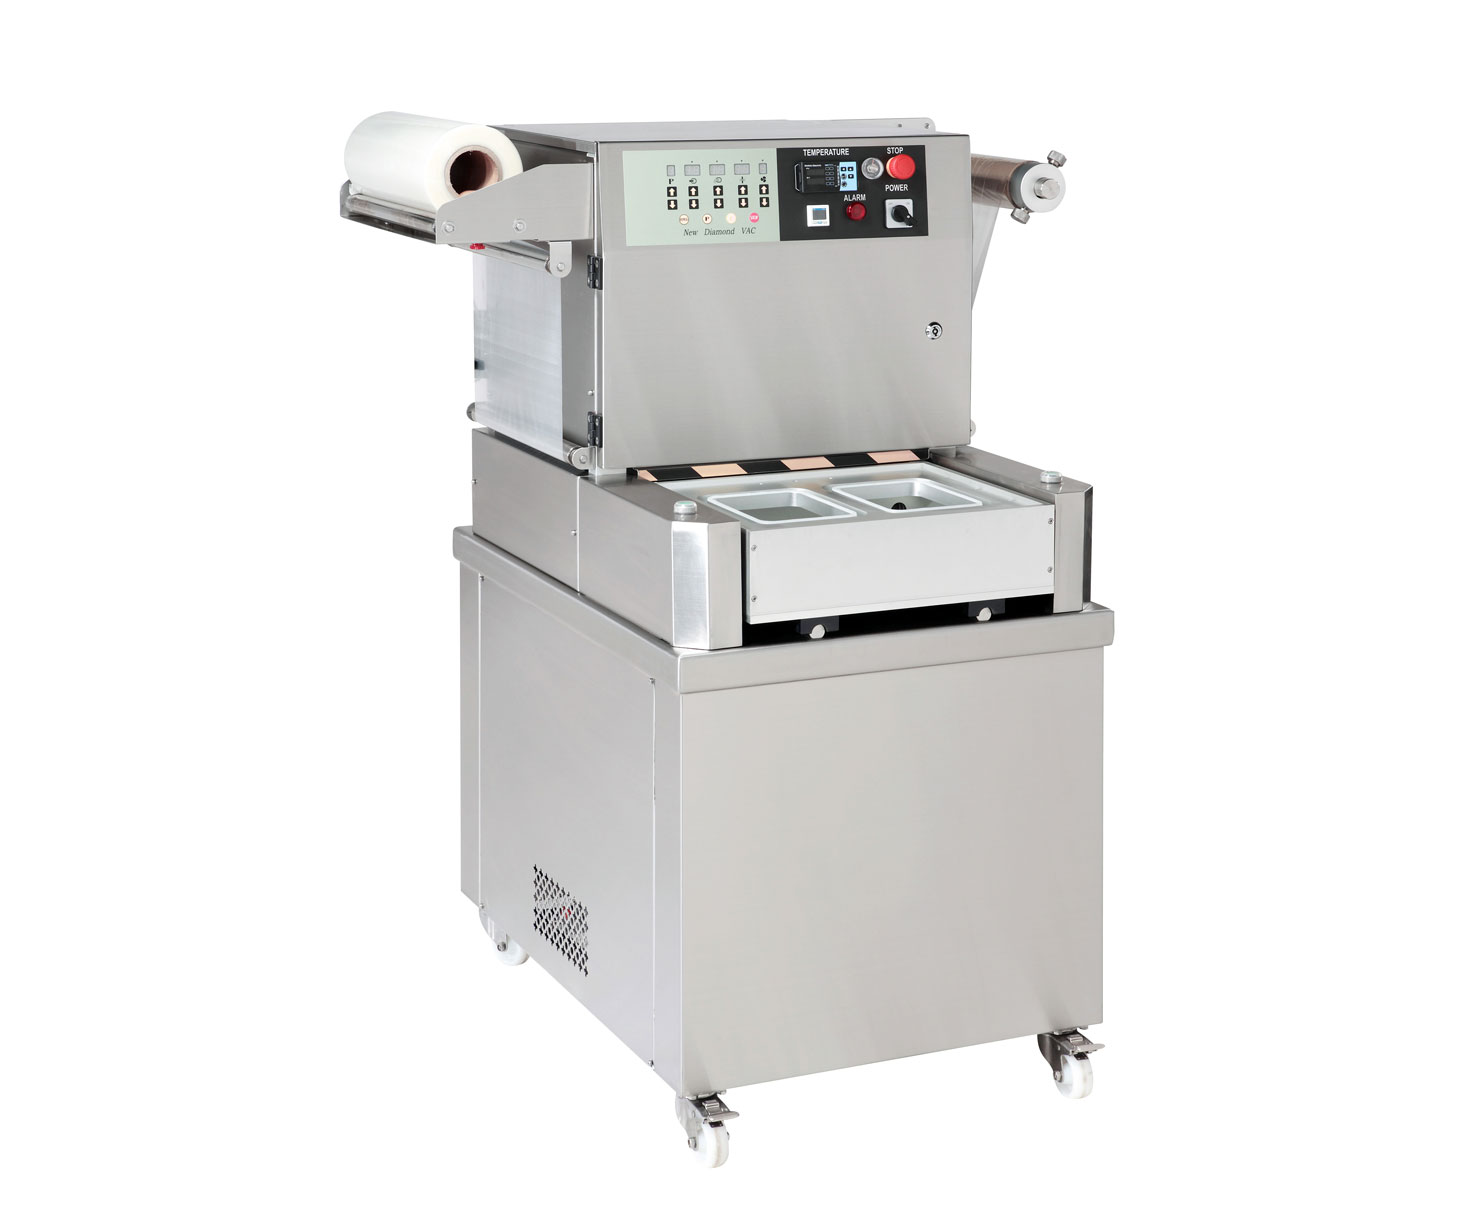 Semiautomatic Tray Sealer with Vacuum and Gas Flushing - J-V052LAS. Semiautomatic Tray Sealer with Vacuum and Gas Flushing